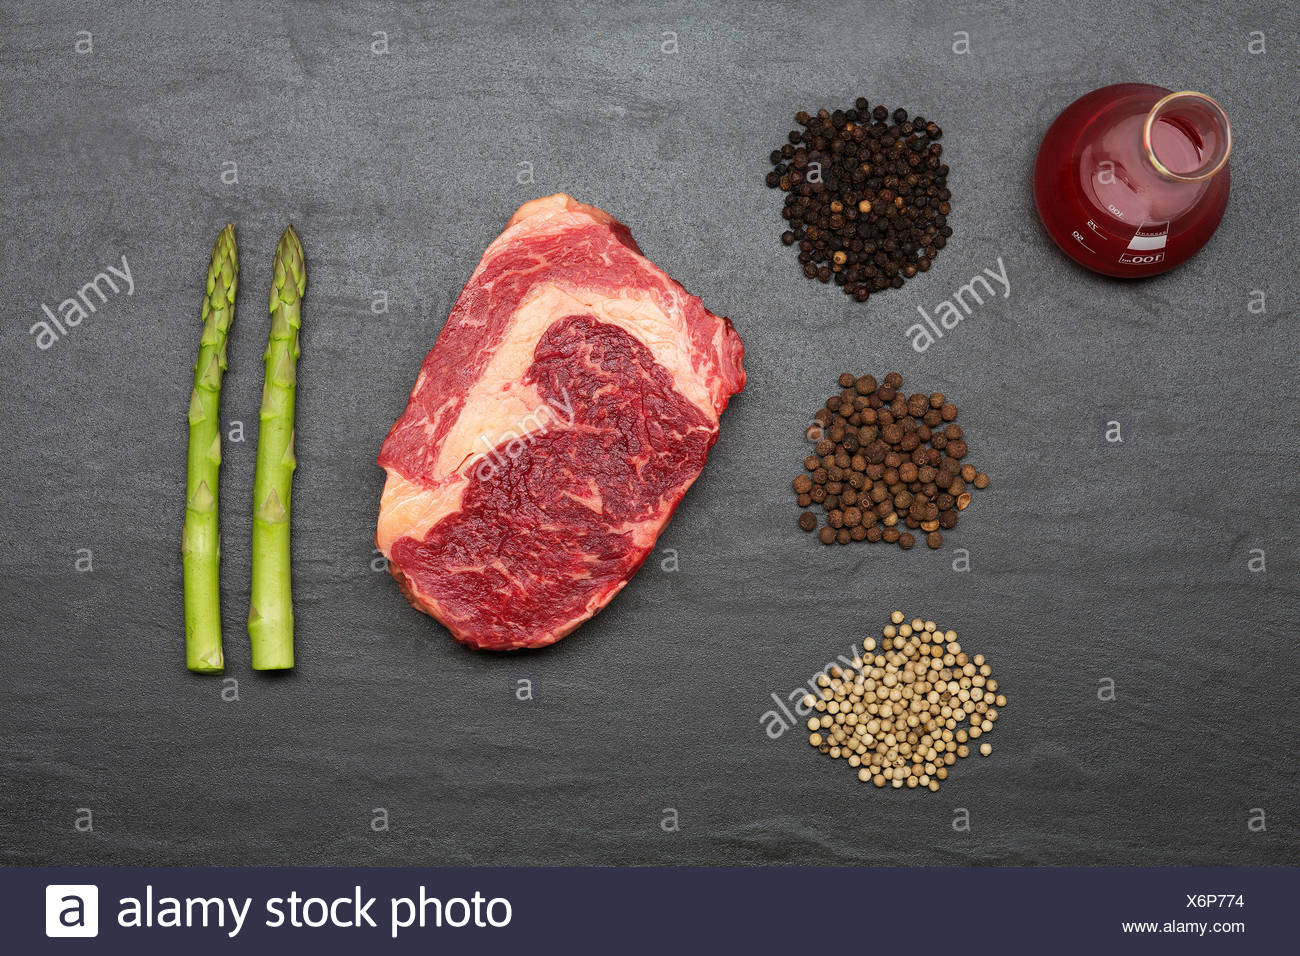 Meat, spices and vegetables on counter Stock Photo